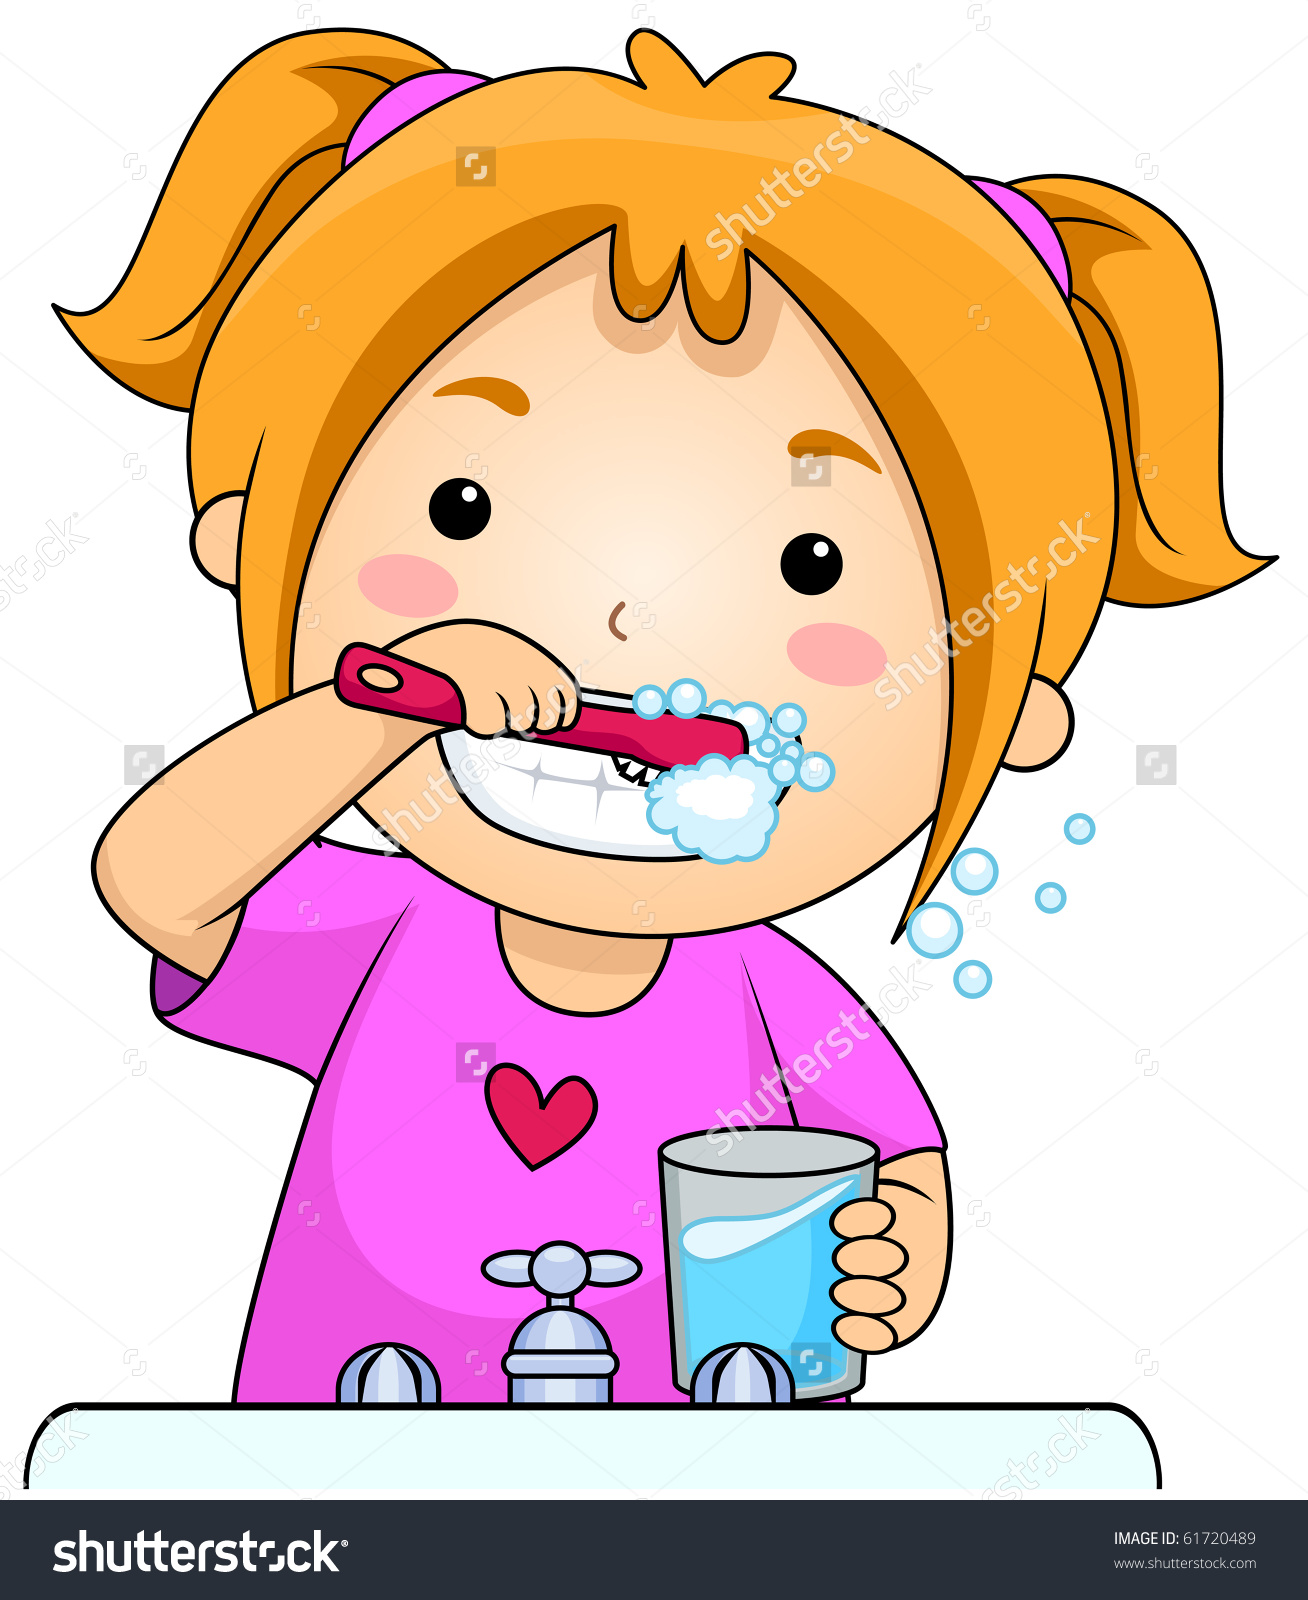 19+ Brush Teeth Clip Art.